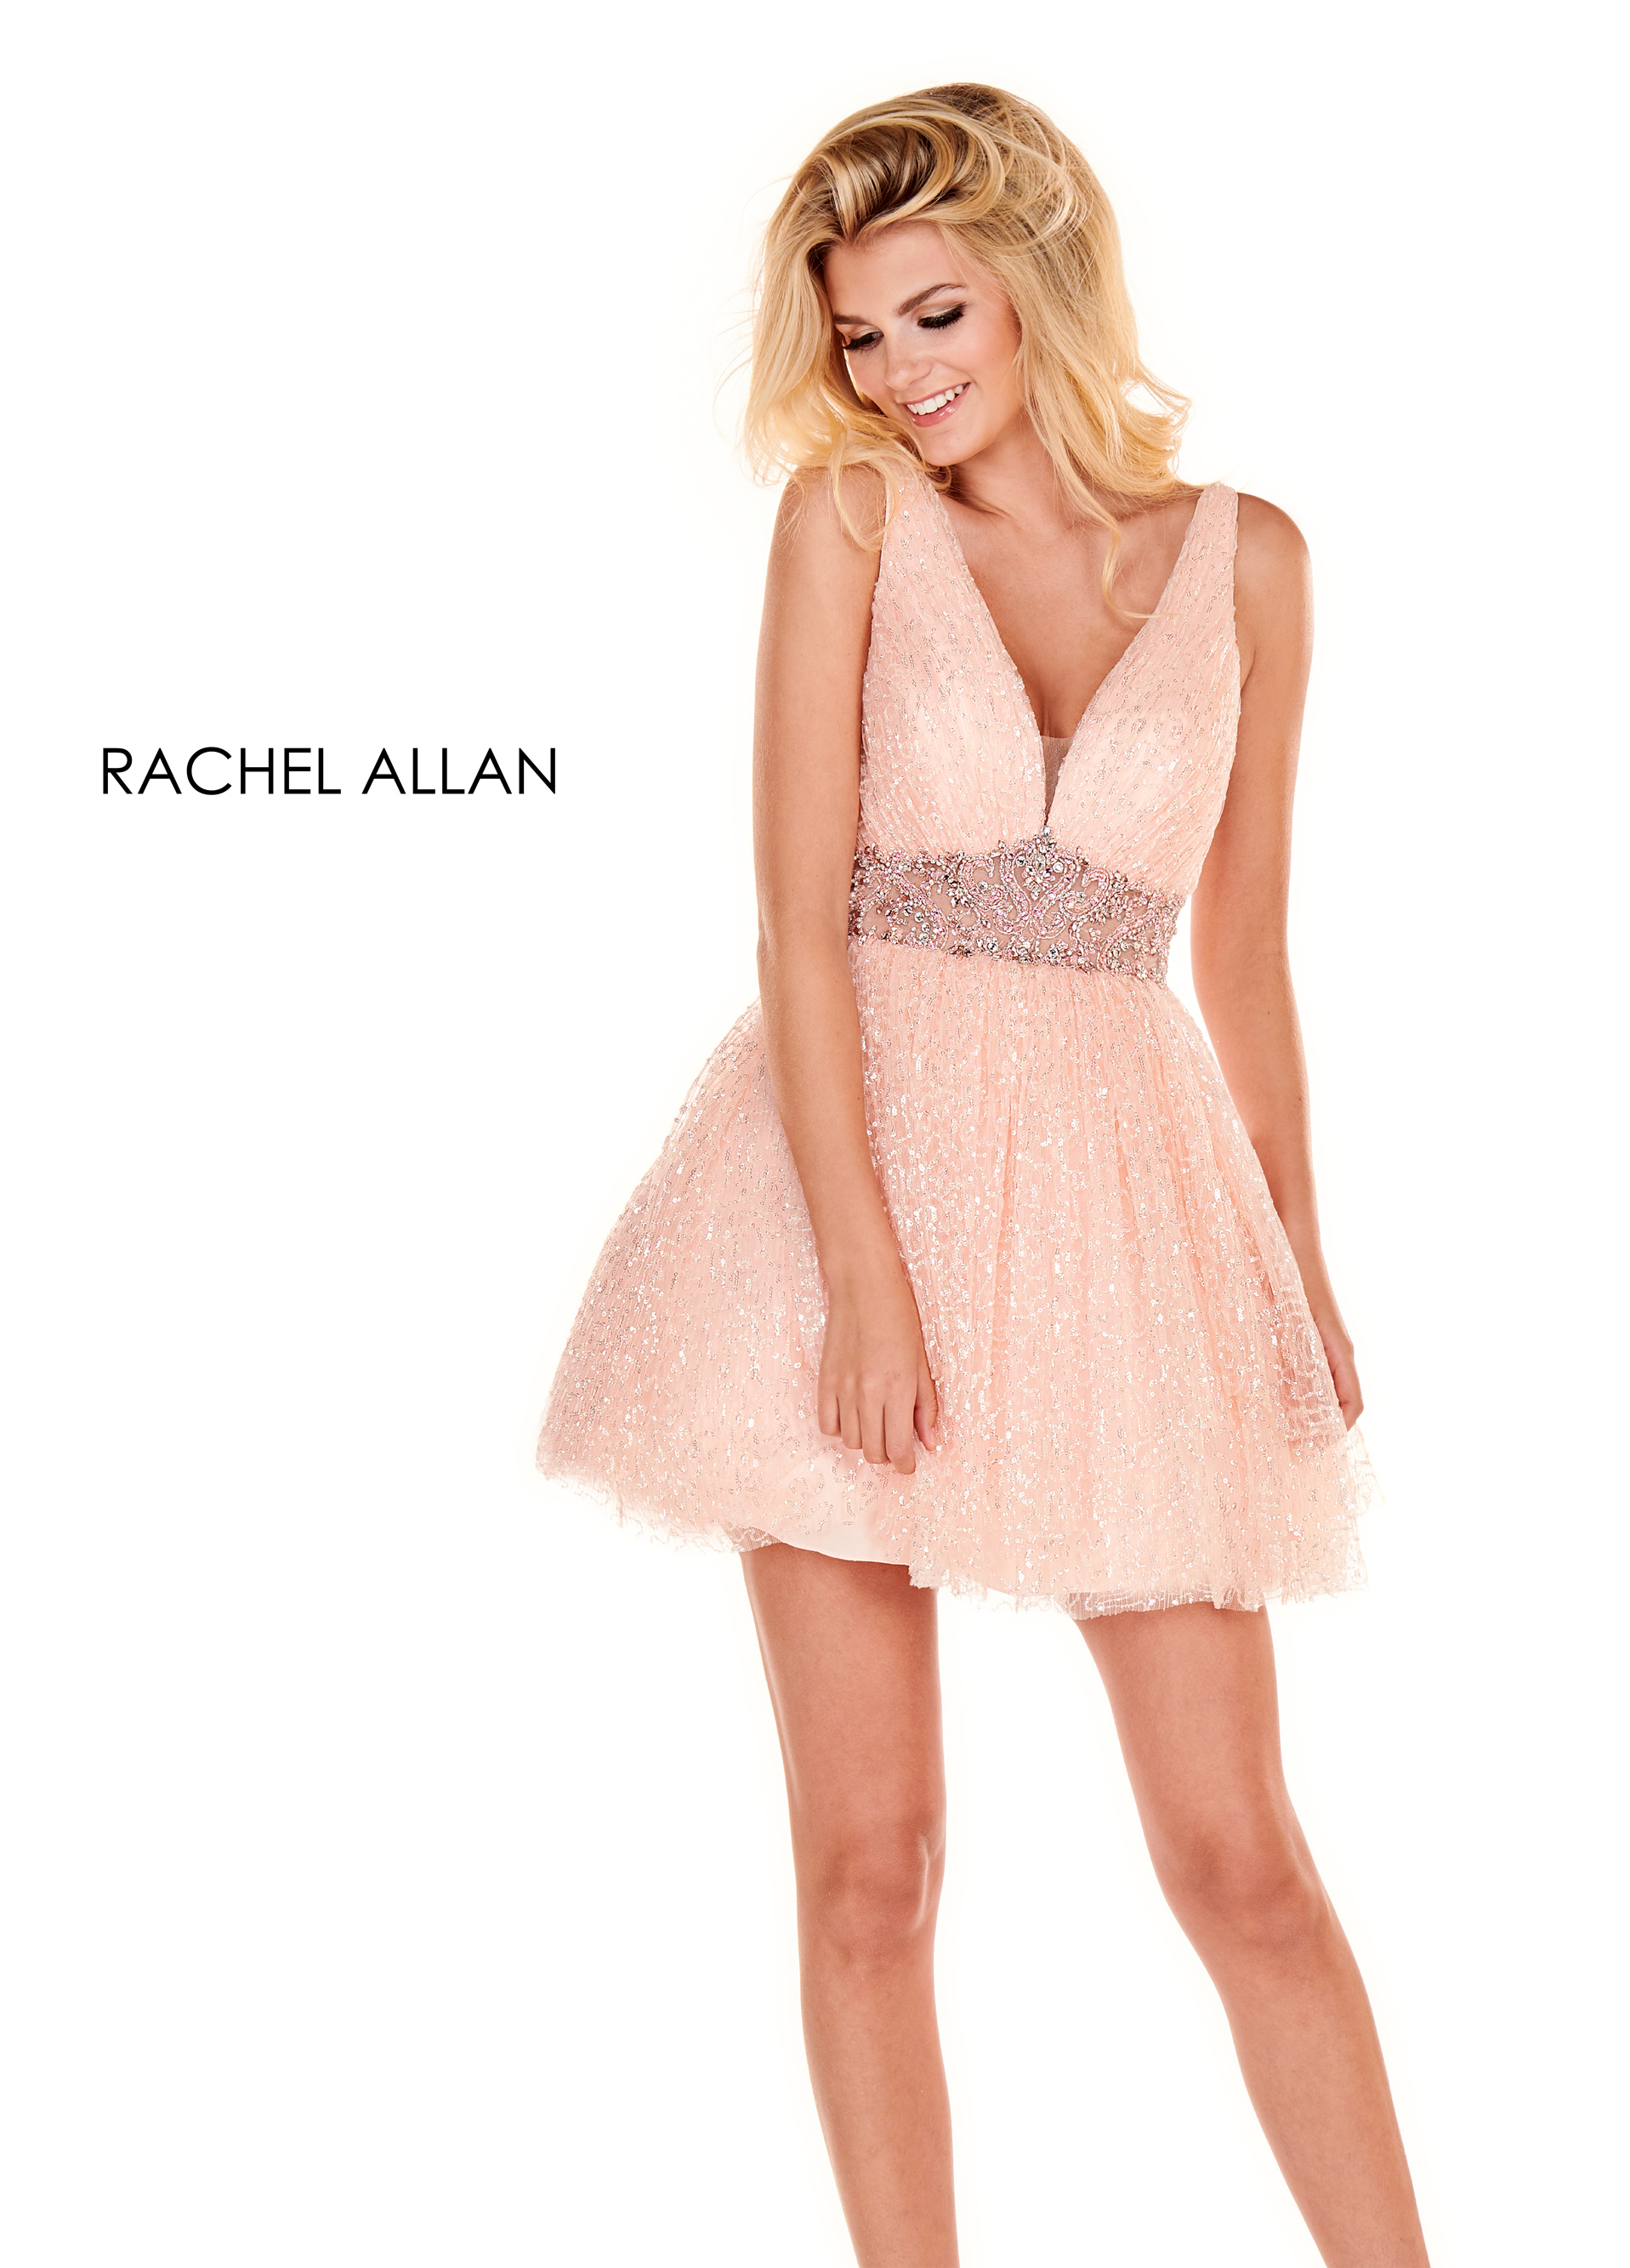 V-Neck A-Line Homecoming Dresses in Blush Color